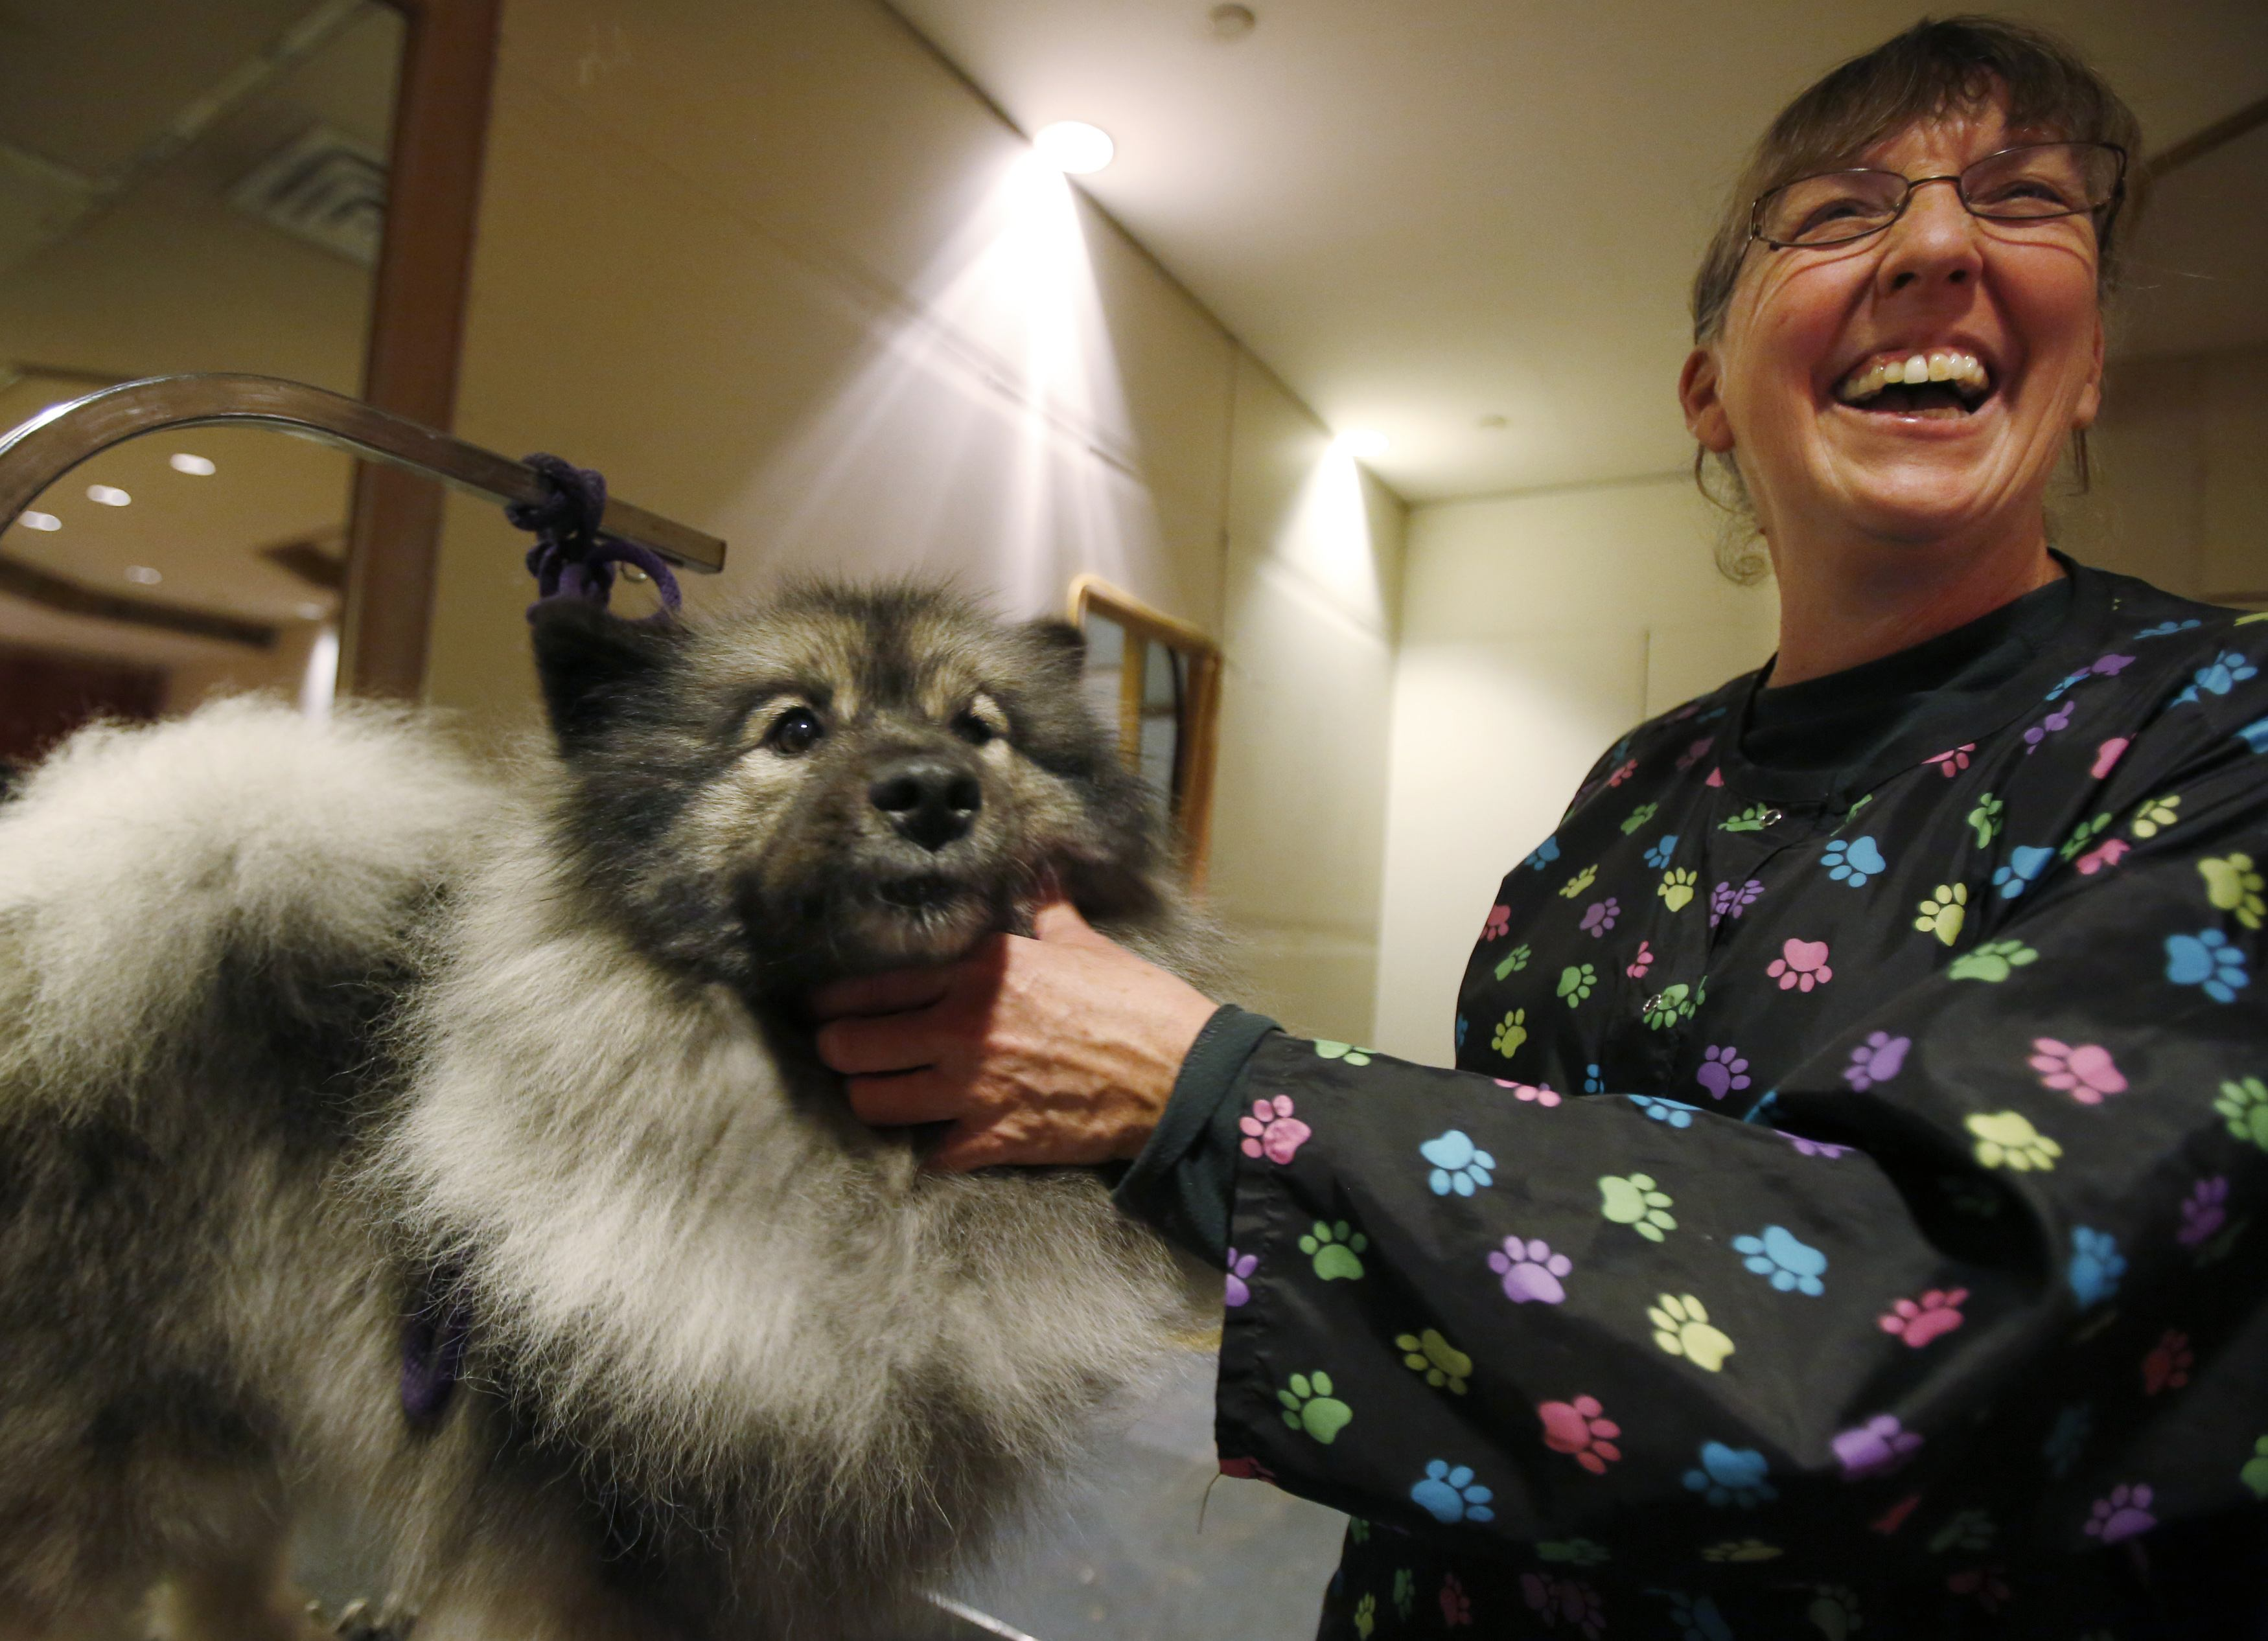 Bonnie Hammond Brown grooms her dog at the dog spa at the Hotel Pennsylvania in advance of the Westminster Dog Show in New York, February 10, 2013.   REUTERS/Carlo Allegri  (UNITED STATES - Tags: SOCIETY ANIMALS)